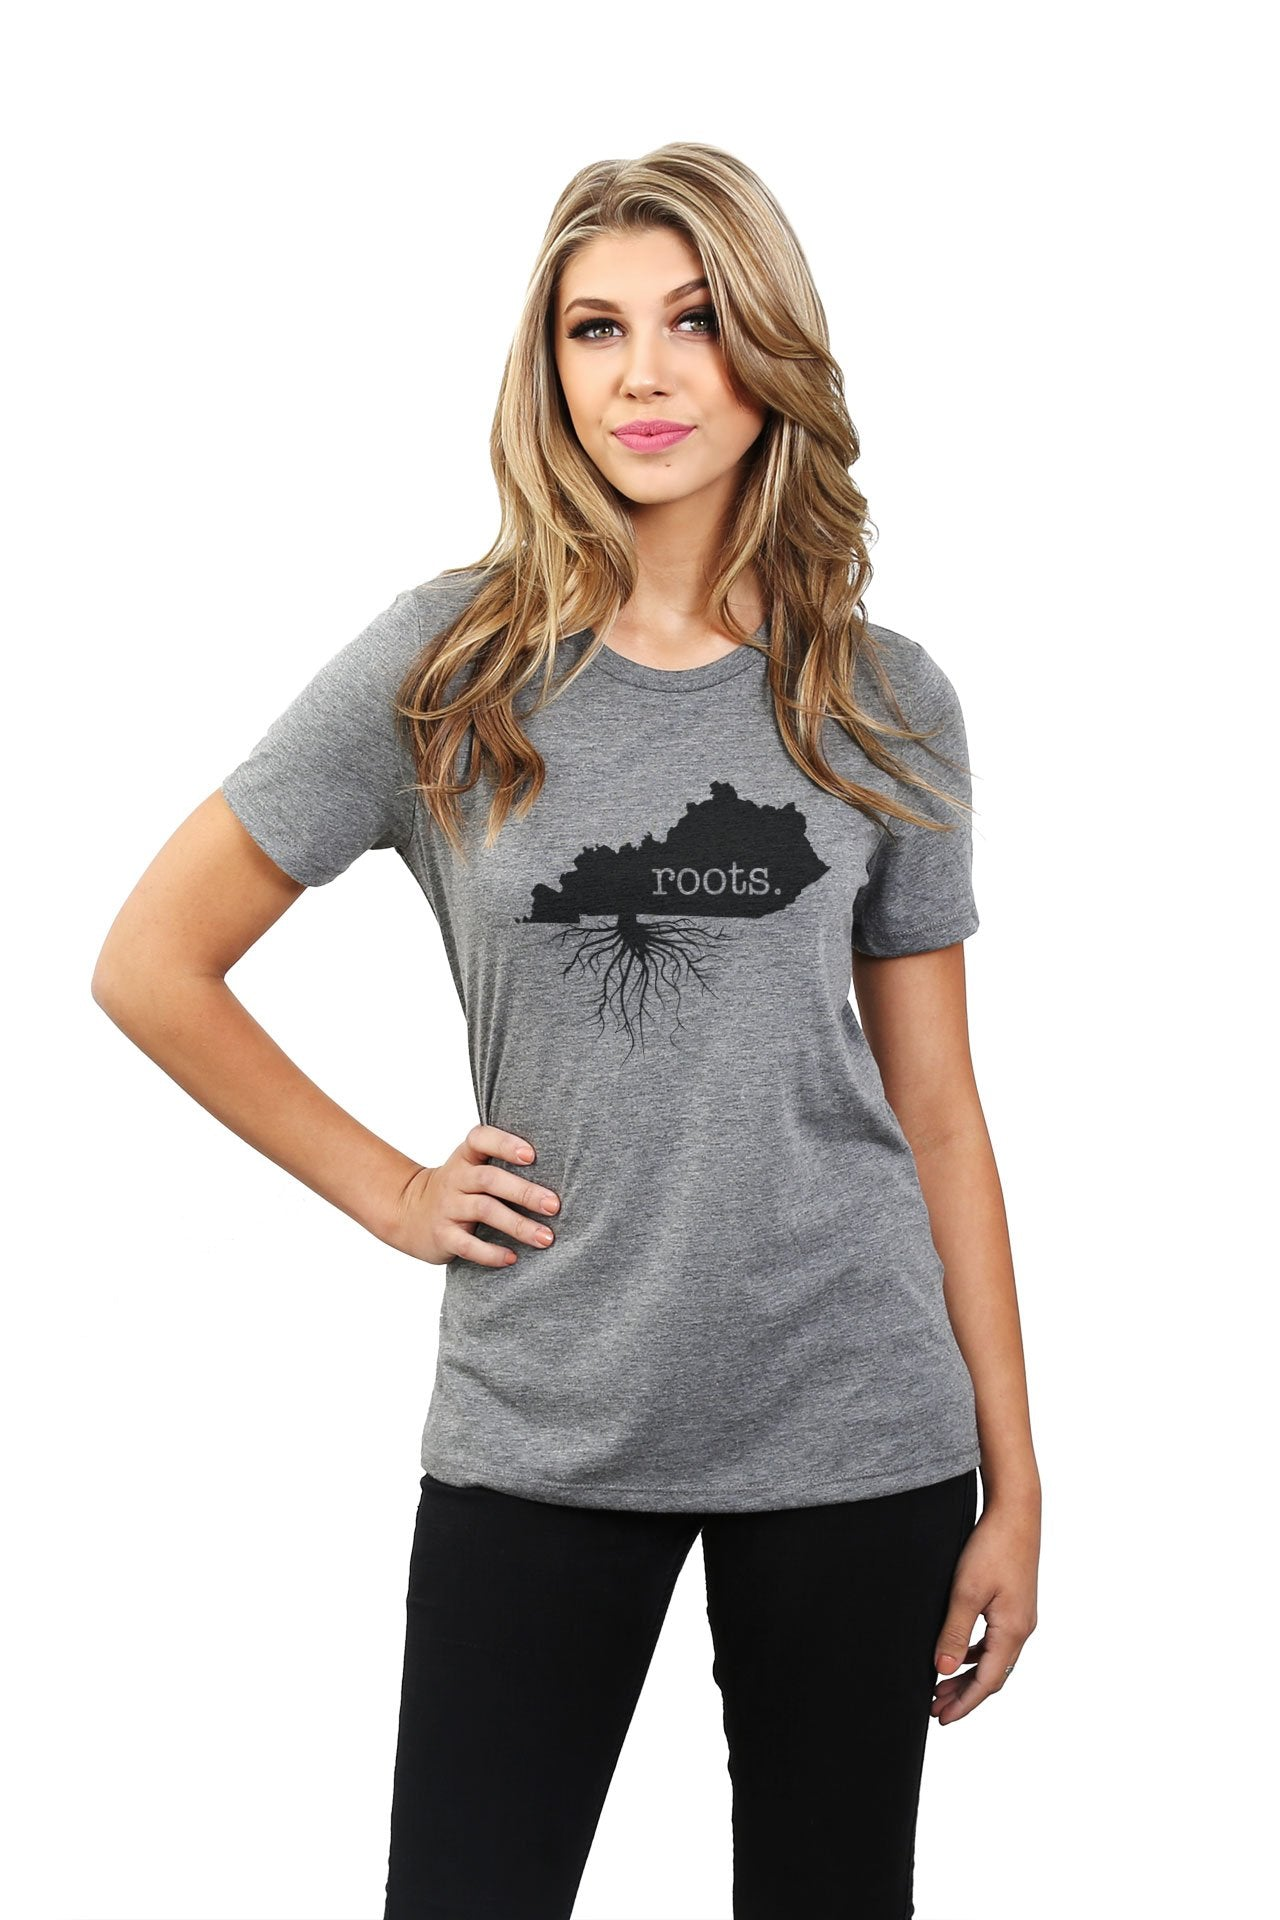 Home Roots State Kentucky KY Women Heather Grey Relaxed Crew T-Shirt Tee Top